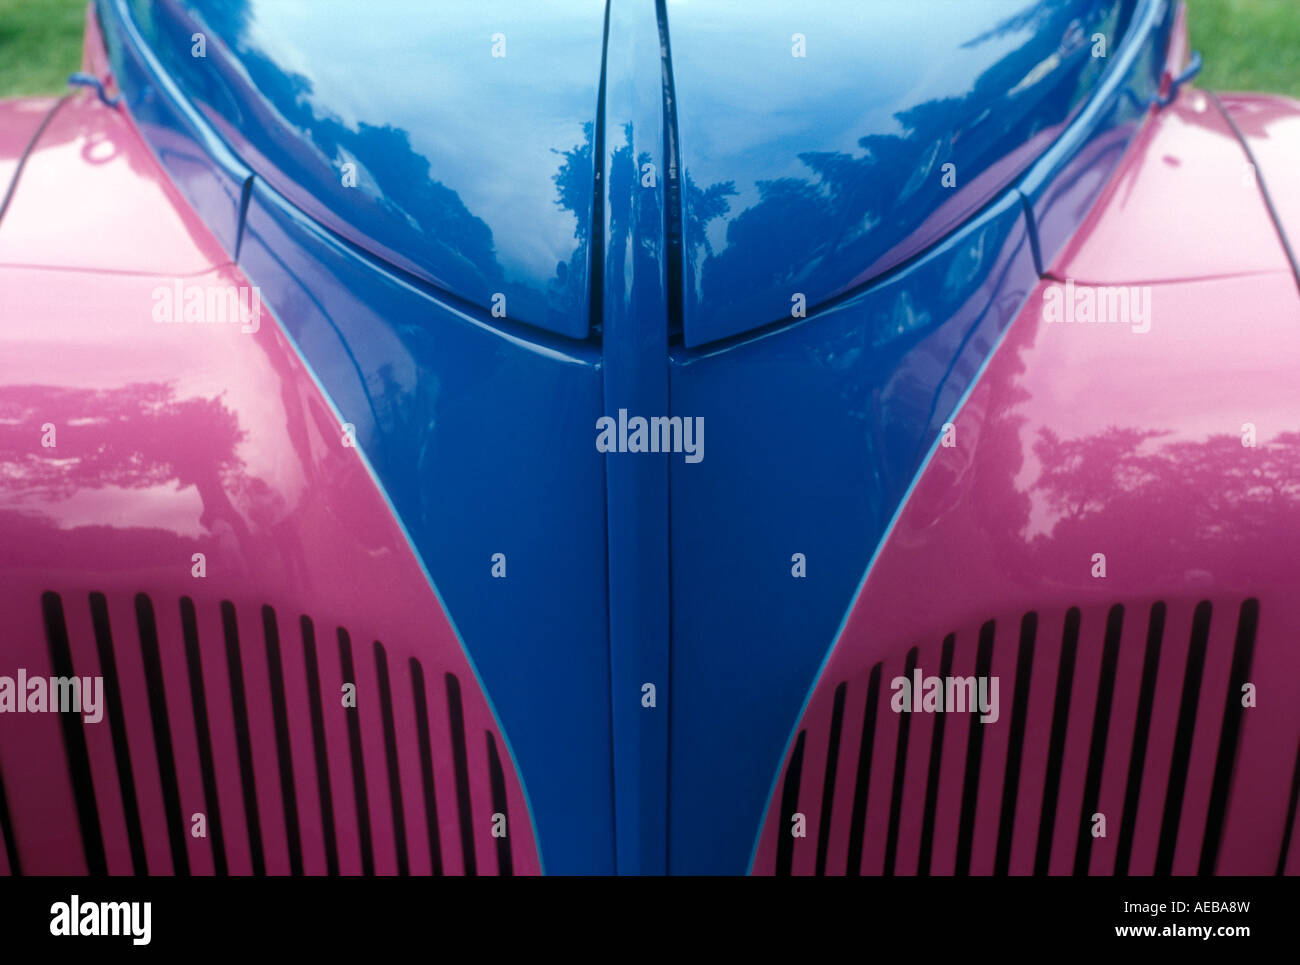 Canada Ontario Niagara on the Lake close up detail of front grille of antique car painted pink and blue - Stock Image